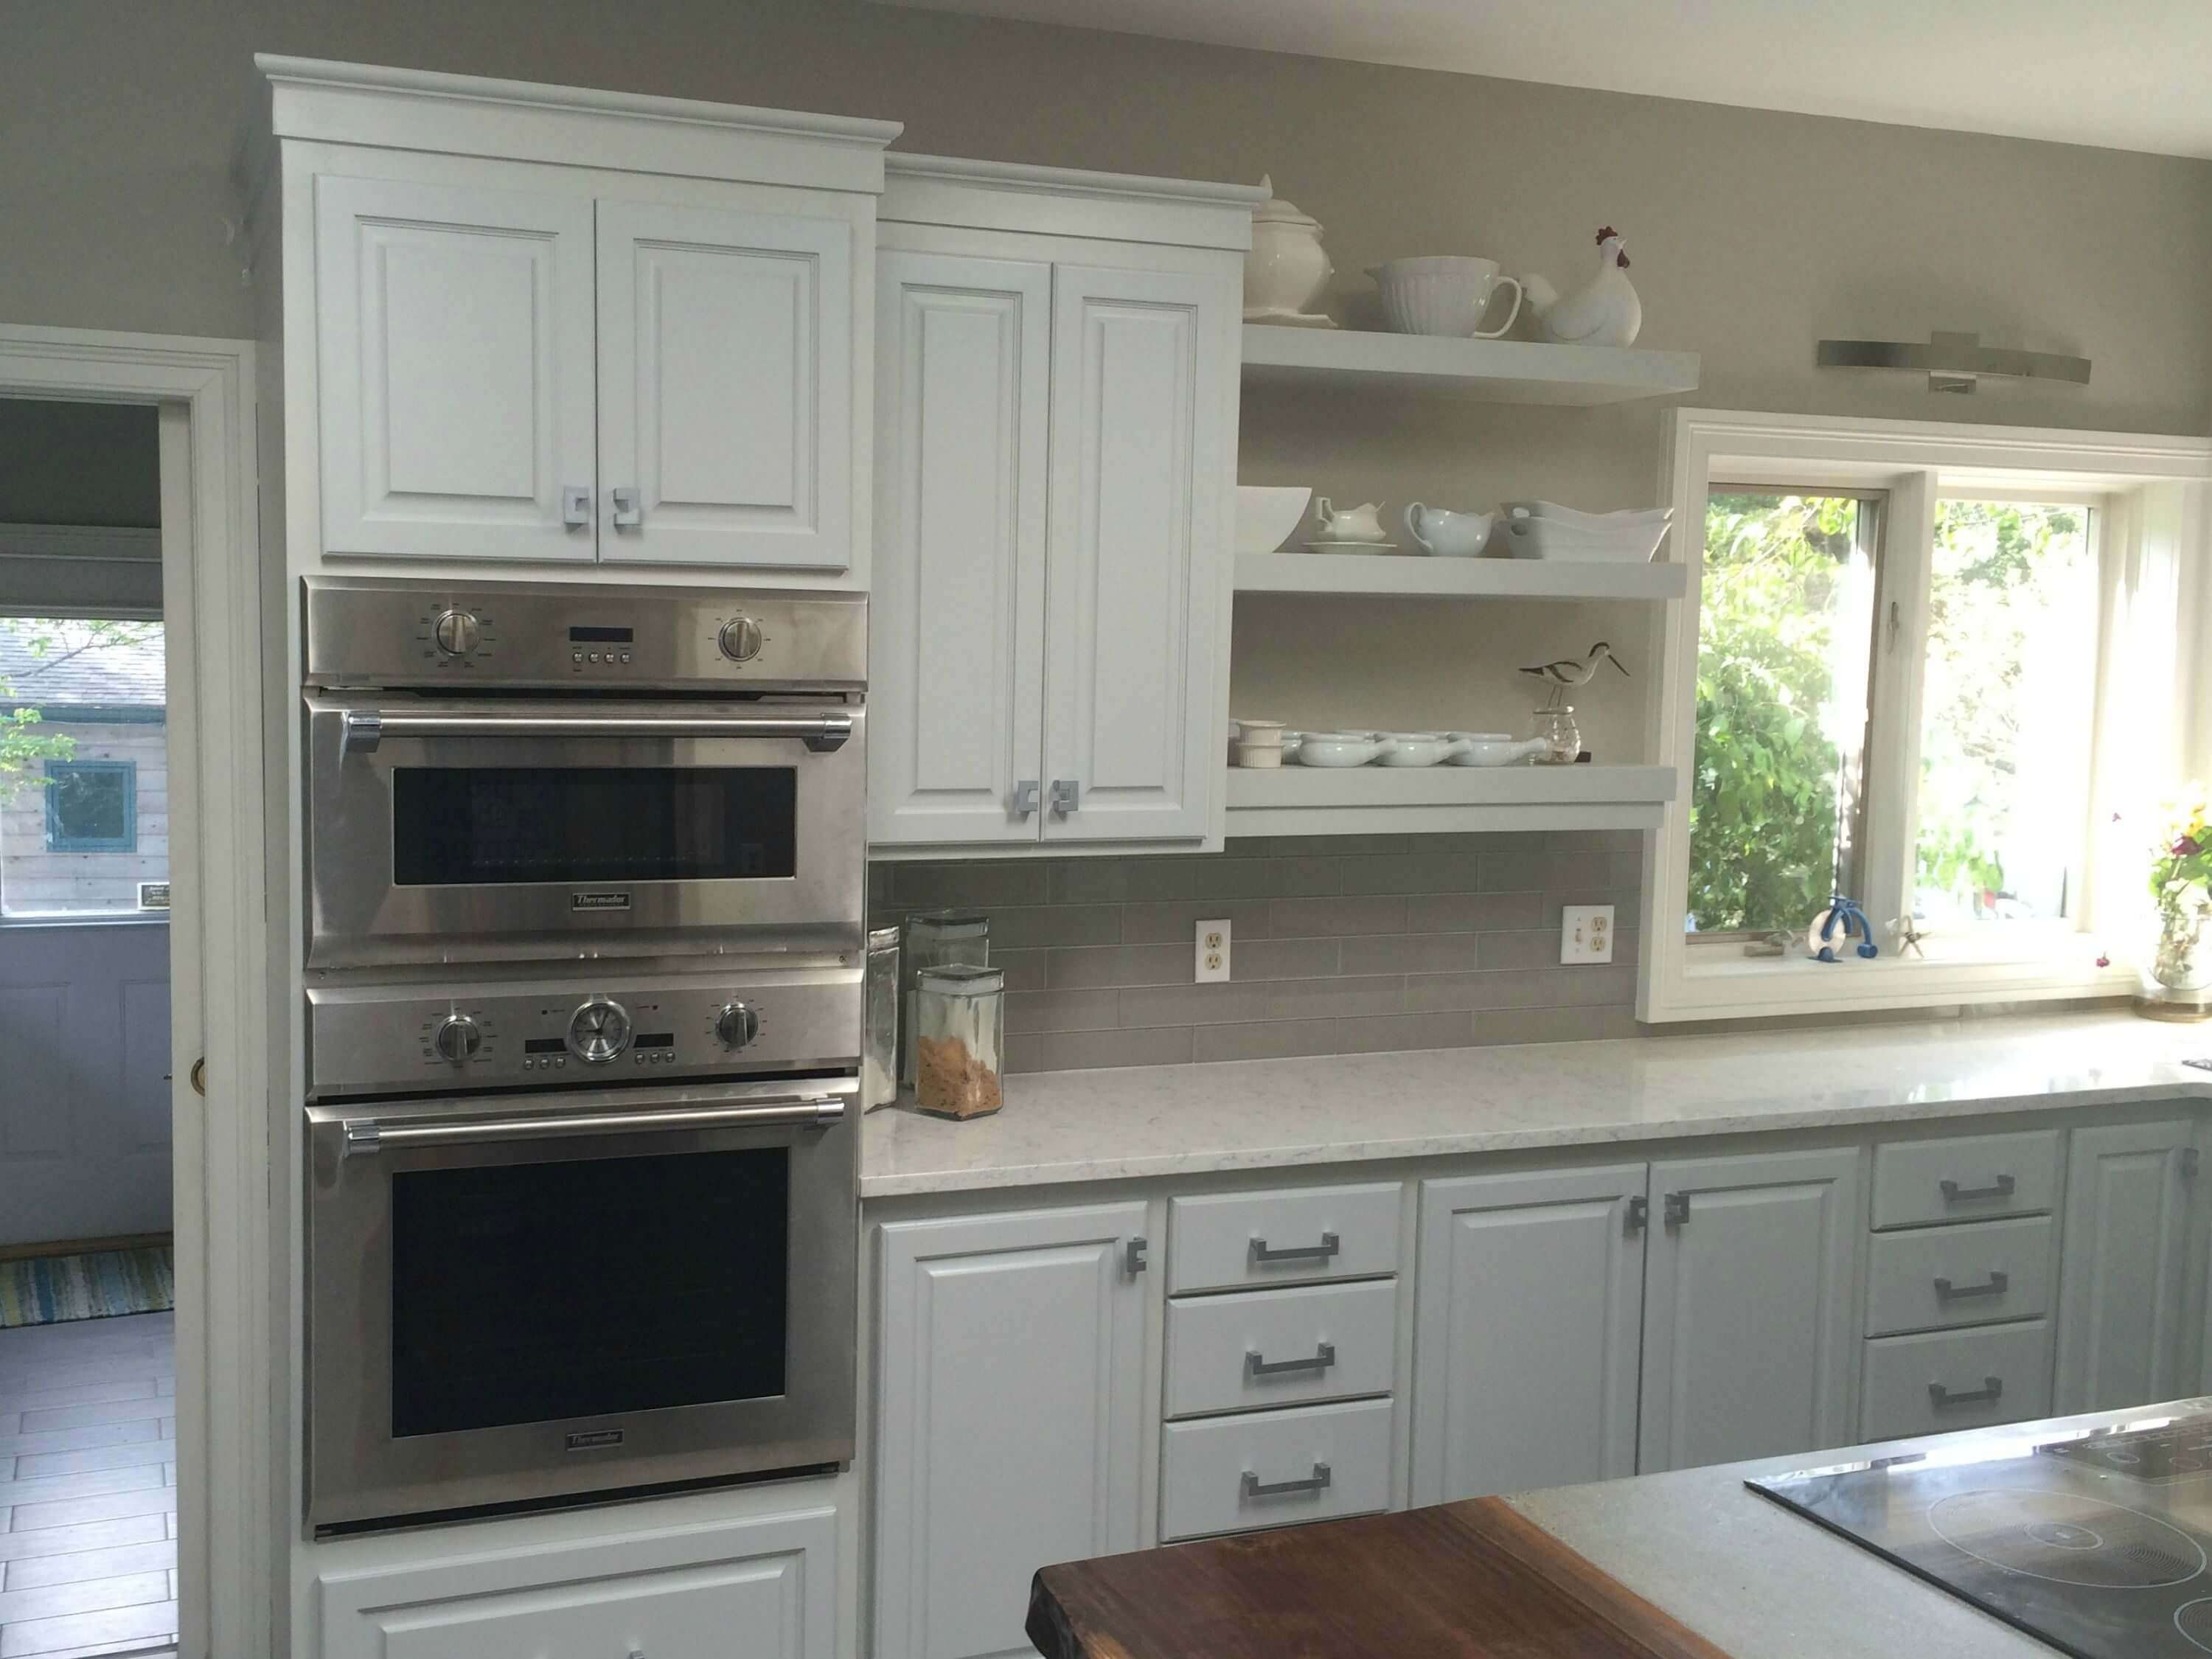 Kitchen cabinet updates tantallon for Kitchen cabinets halifax